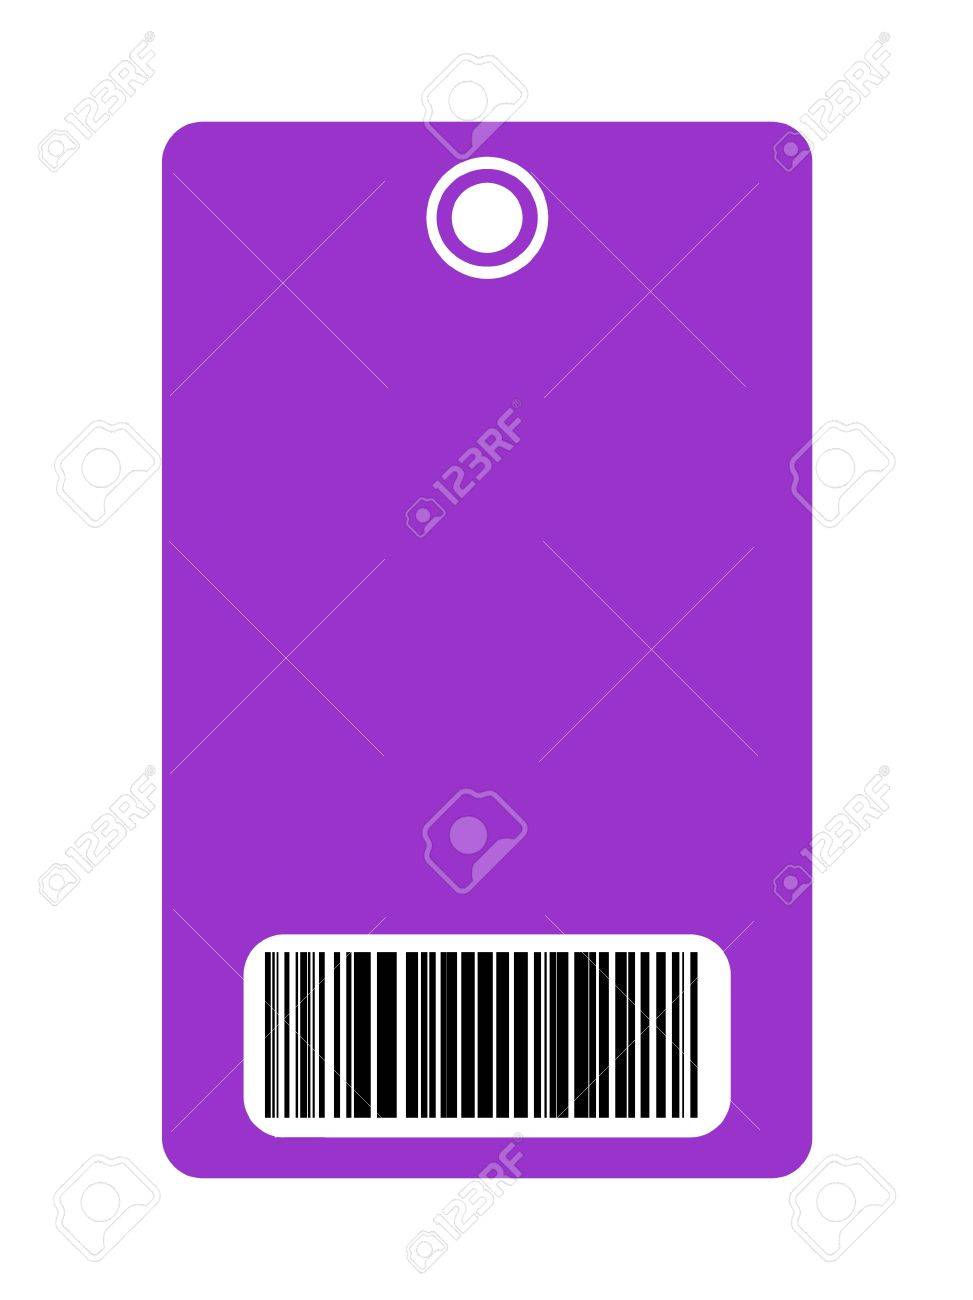 Closeup of blank security pass with bar code, isolated on white background. Stock Photo - 6270353